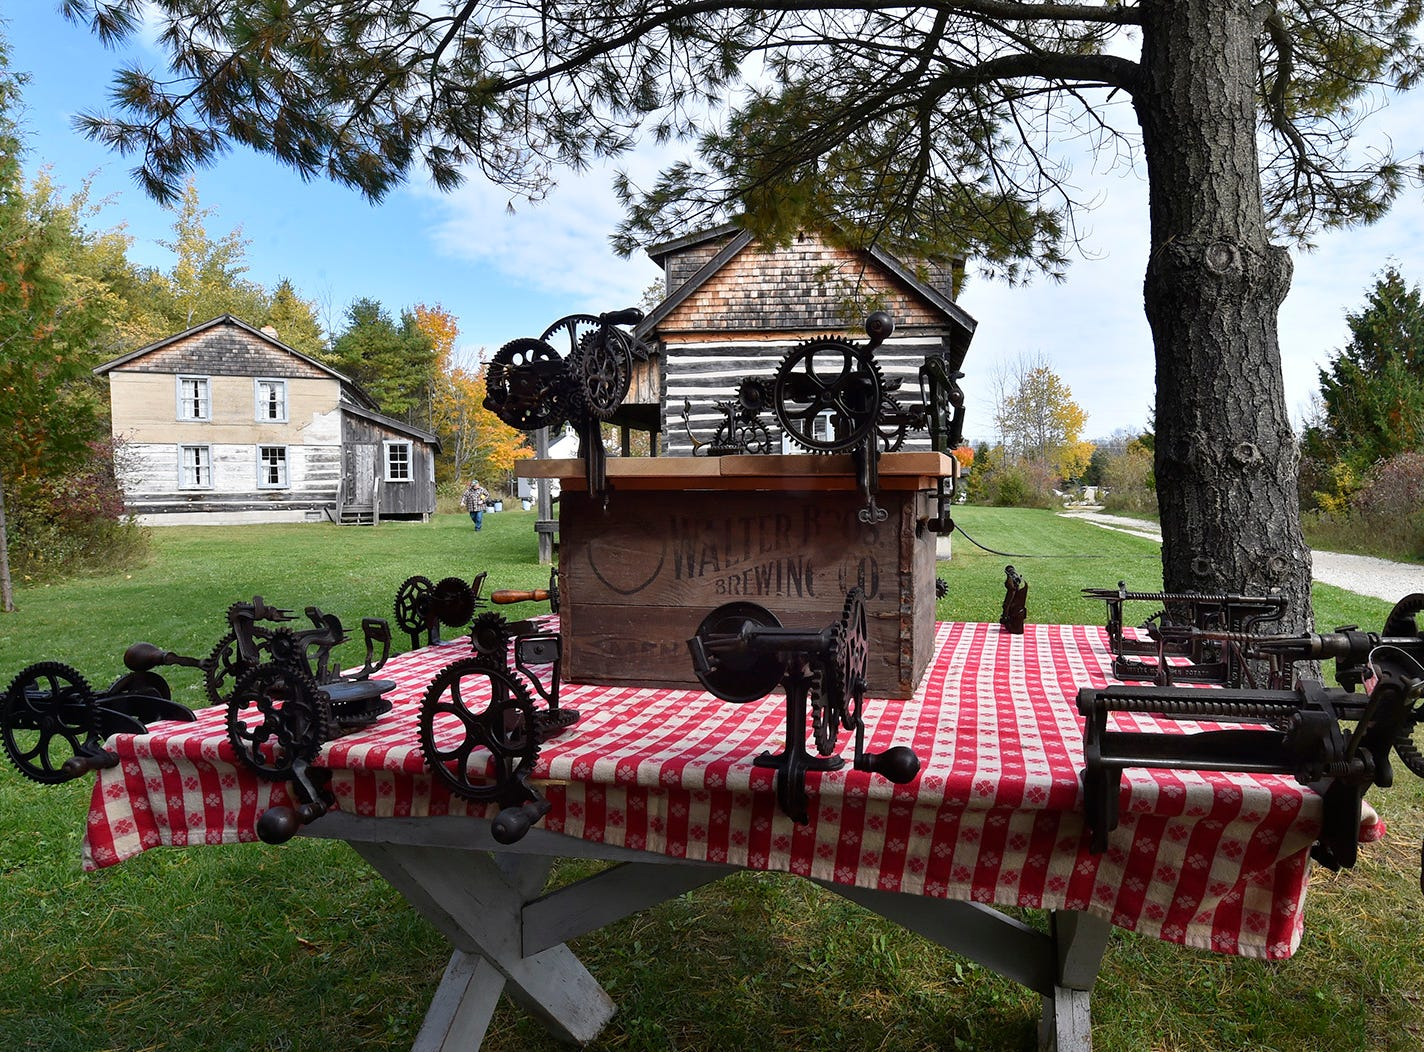 A collection of antique mechanical apple peelers on display during Apple Day at Heritage Village at Big Creek in Sturgeon Bay on Oct. 13, 2018. Tina M. Gohr/USA TODAY NETWORK-Wisconsin